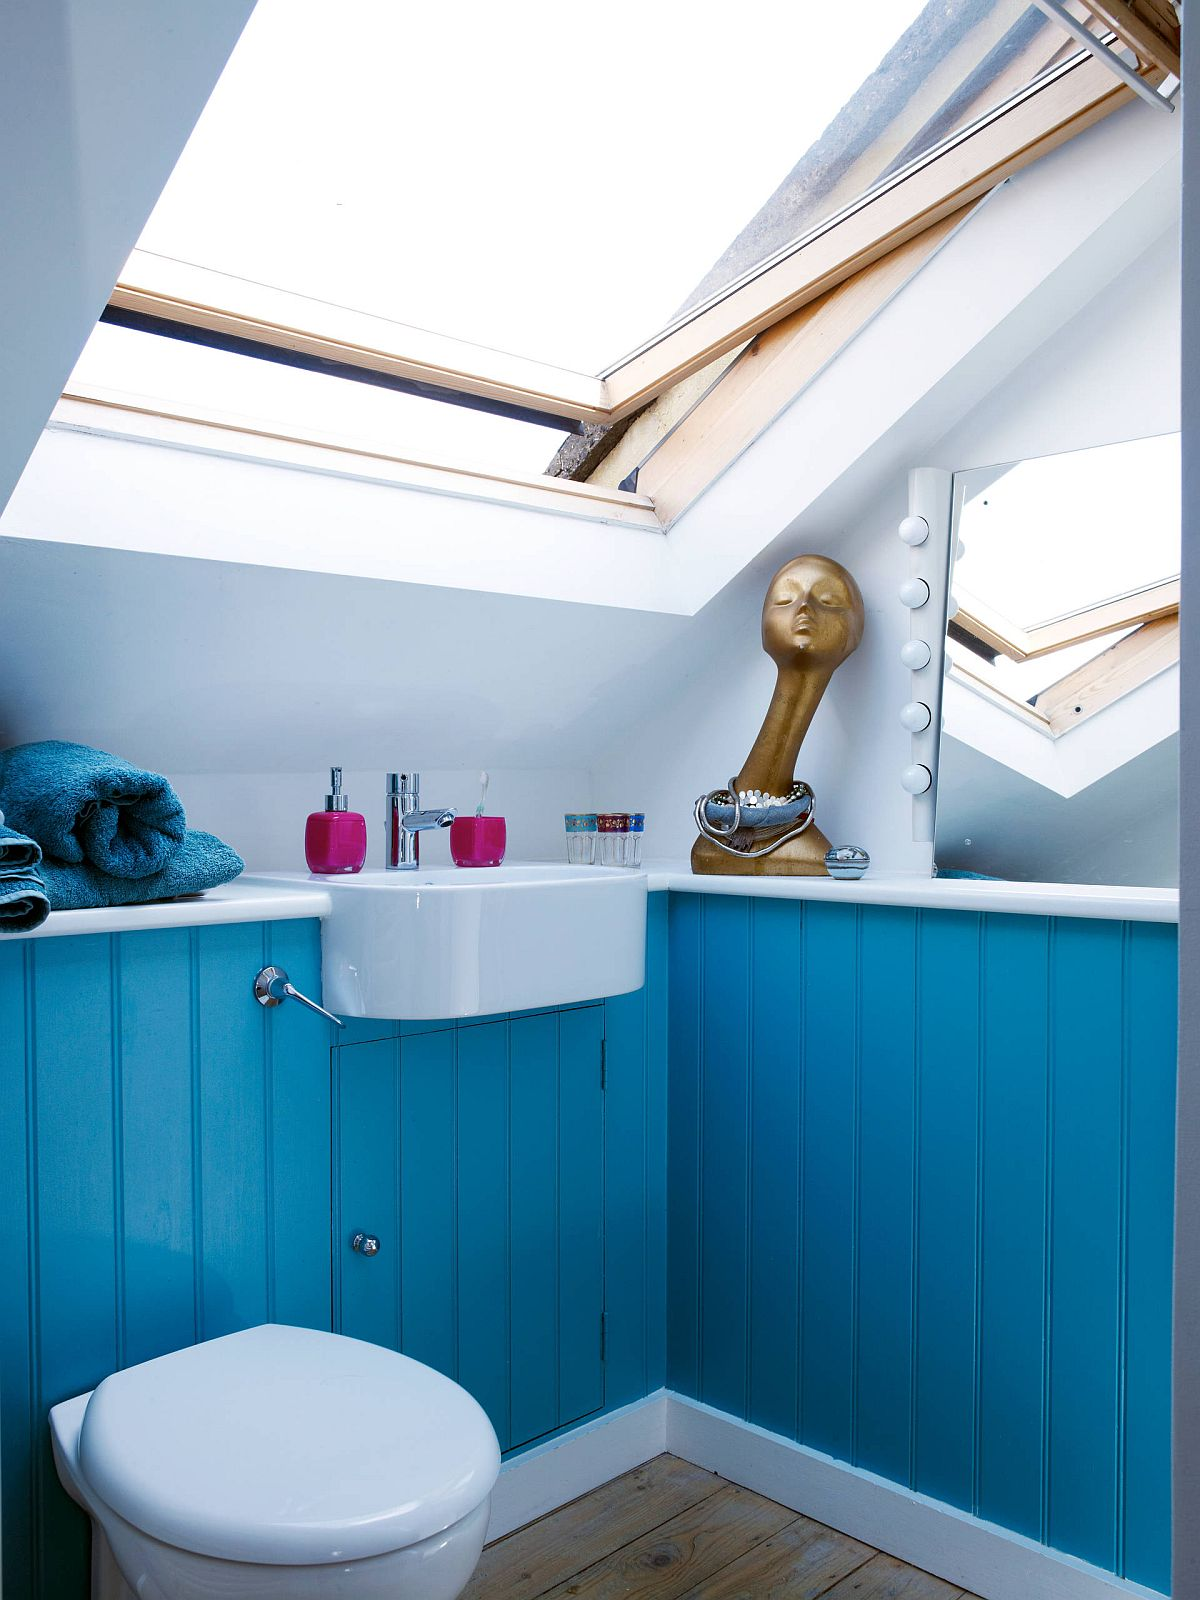 Try-out-trendy-blue-inside-the-attic-bathroom-this-spring-93157